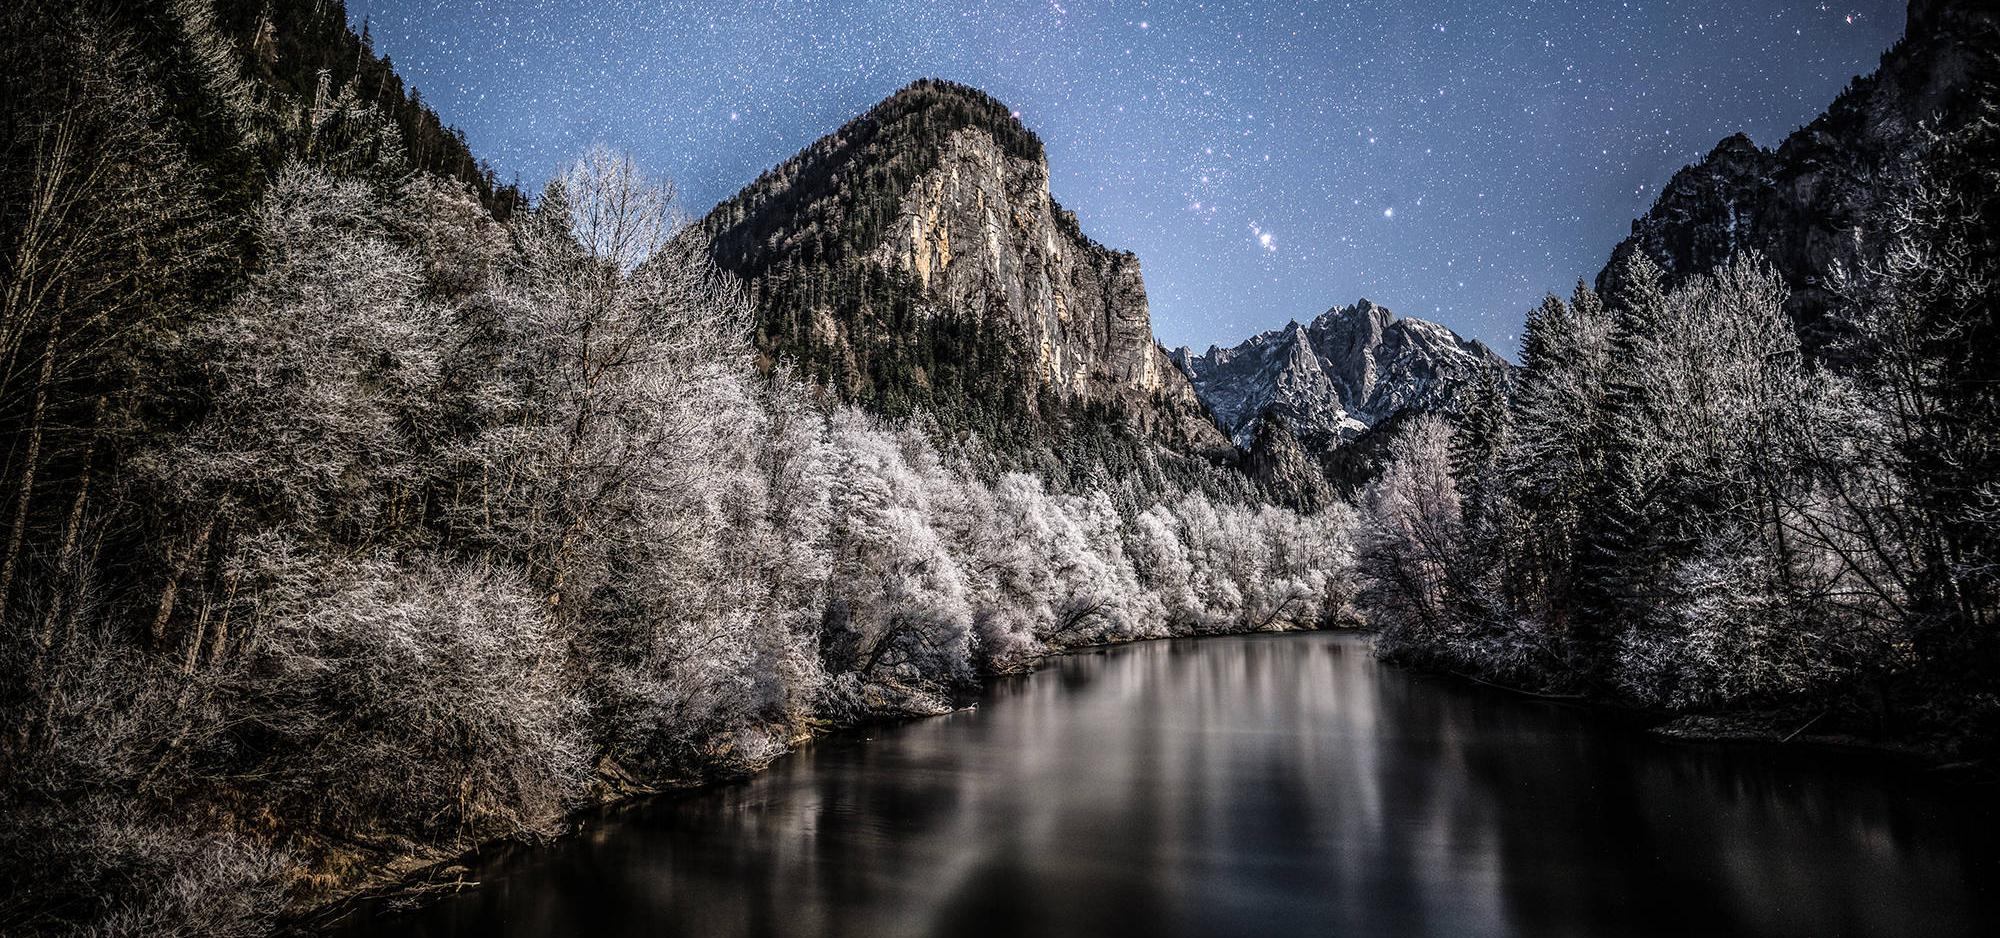 River and mountain at night